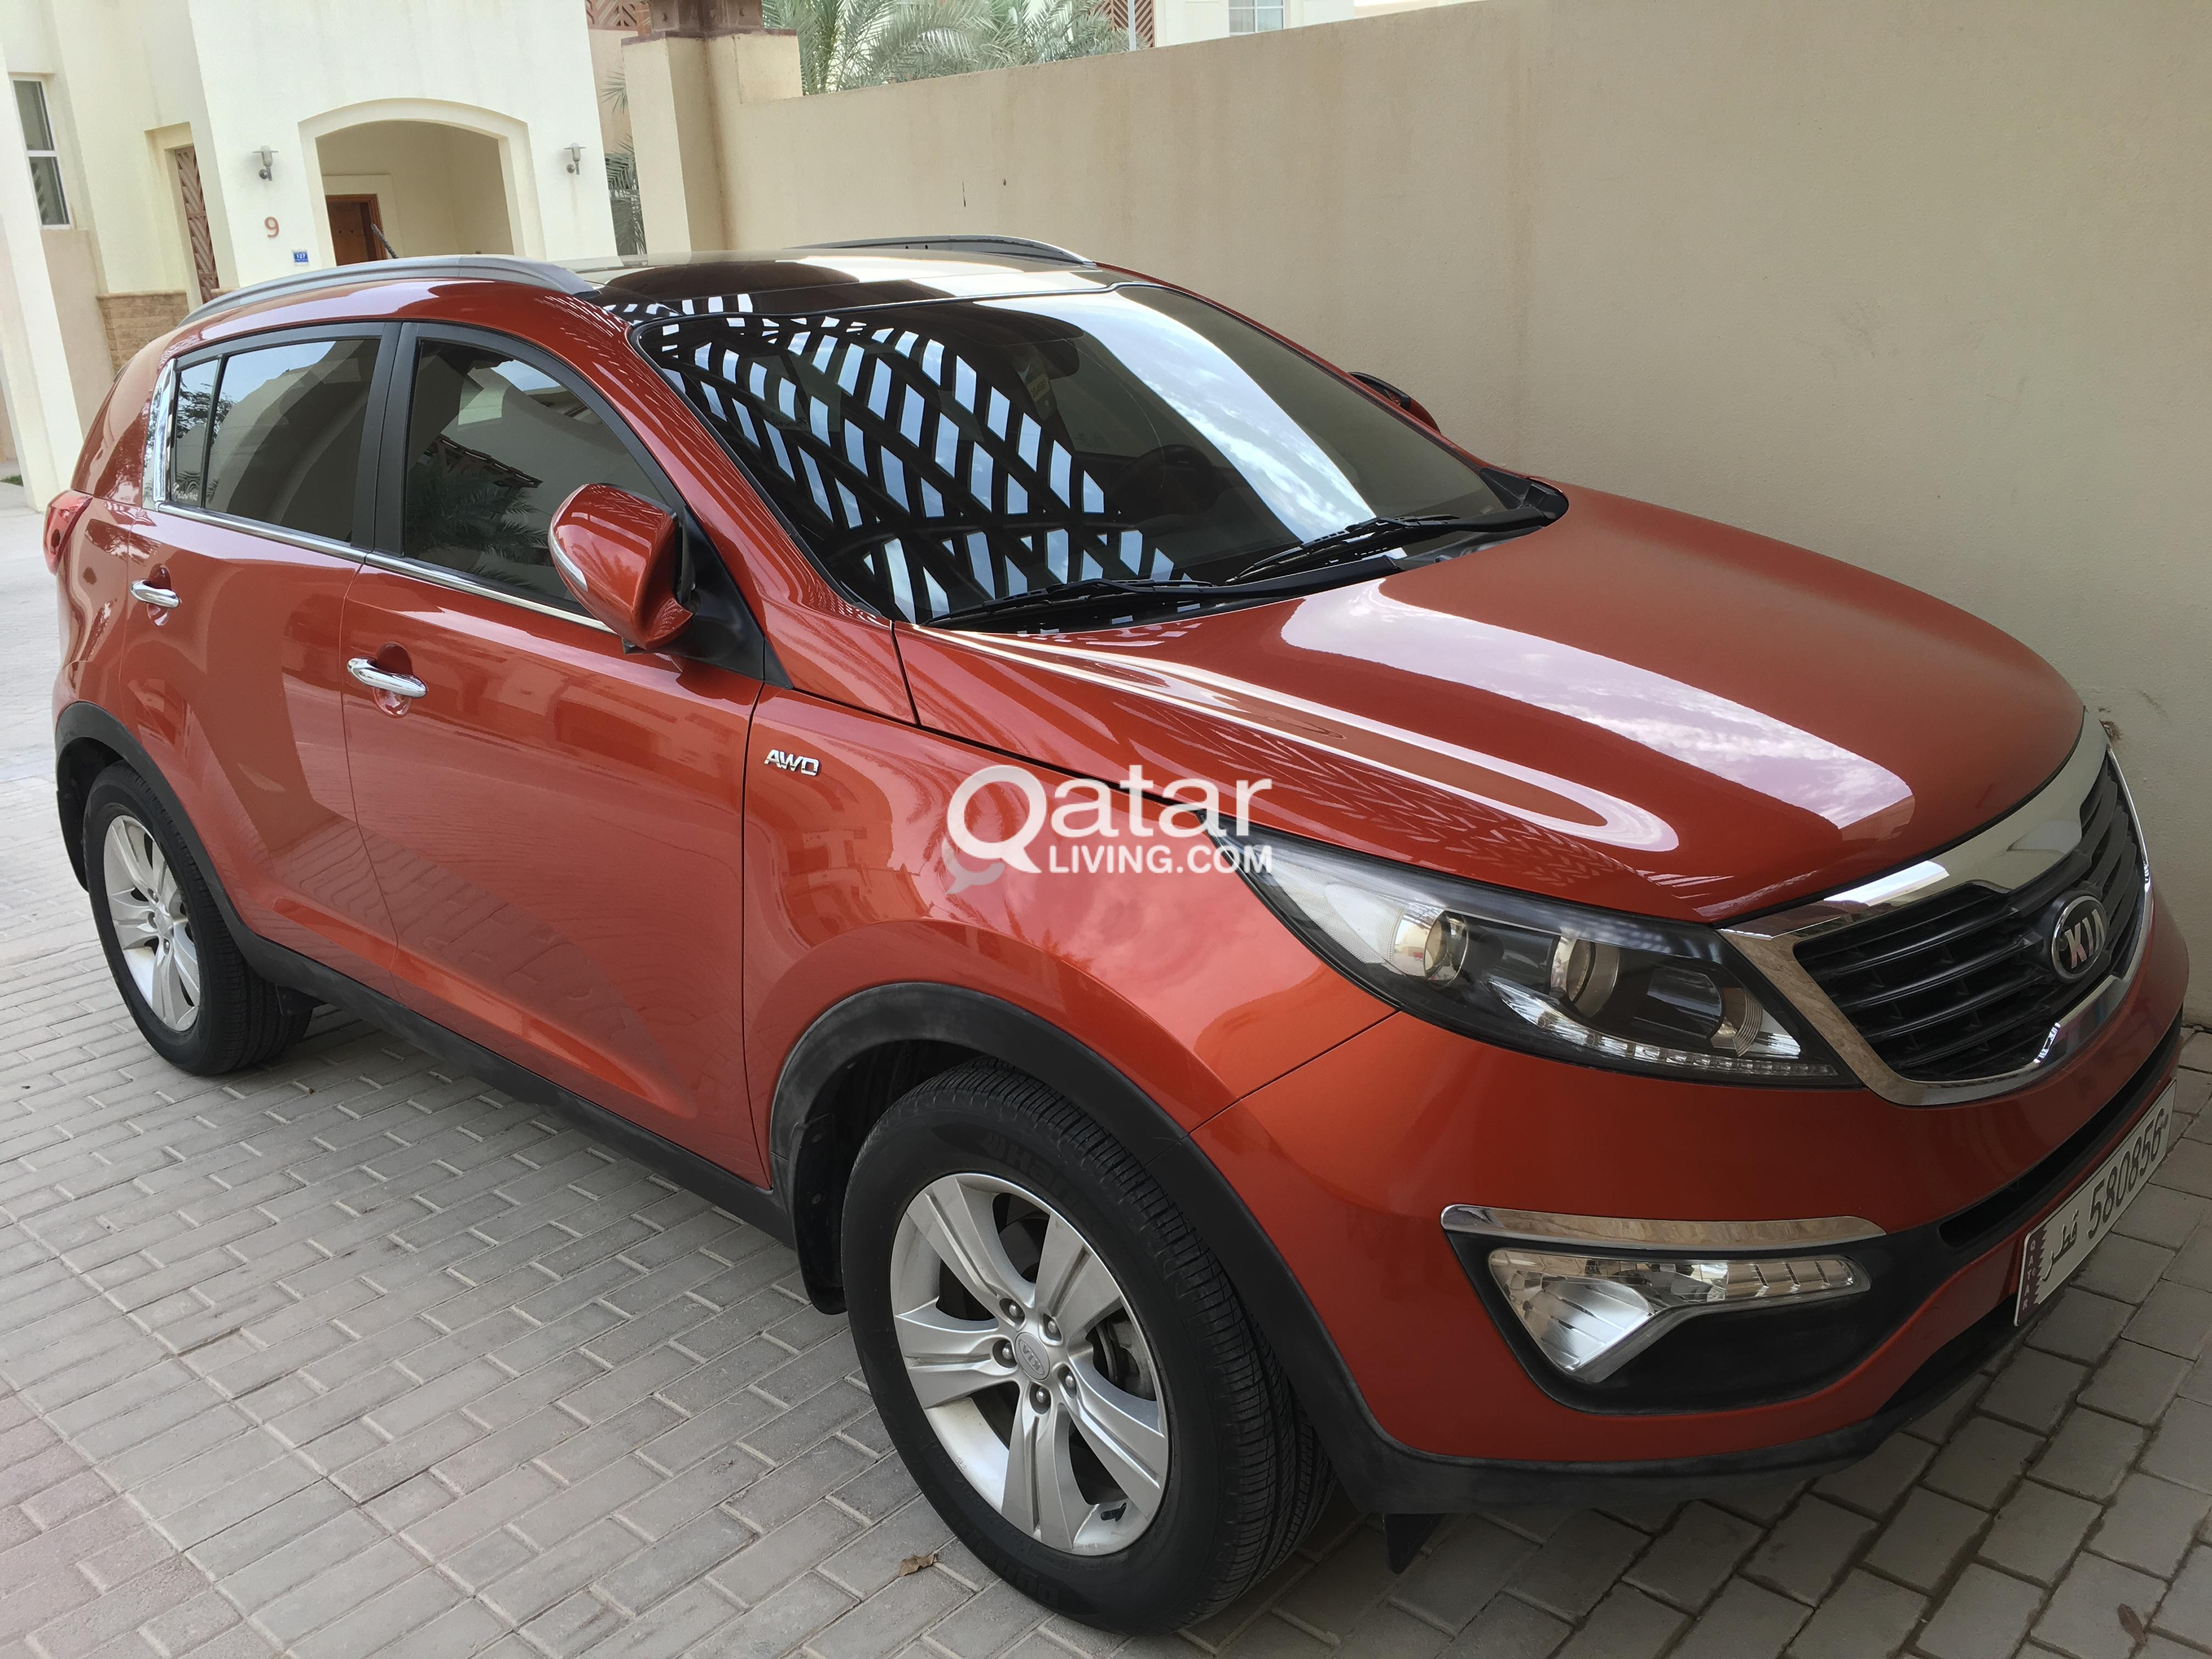 forum sportage orange grill front test and its my kia initial bhp sexy reports it s drives team ownership